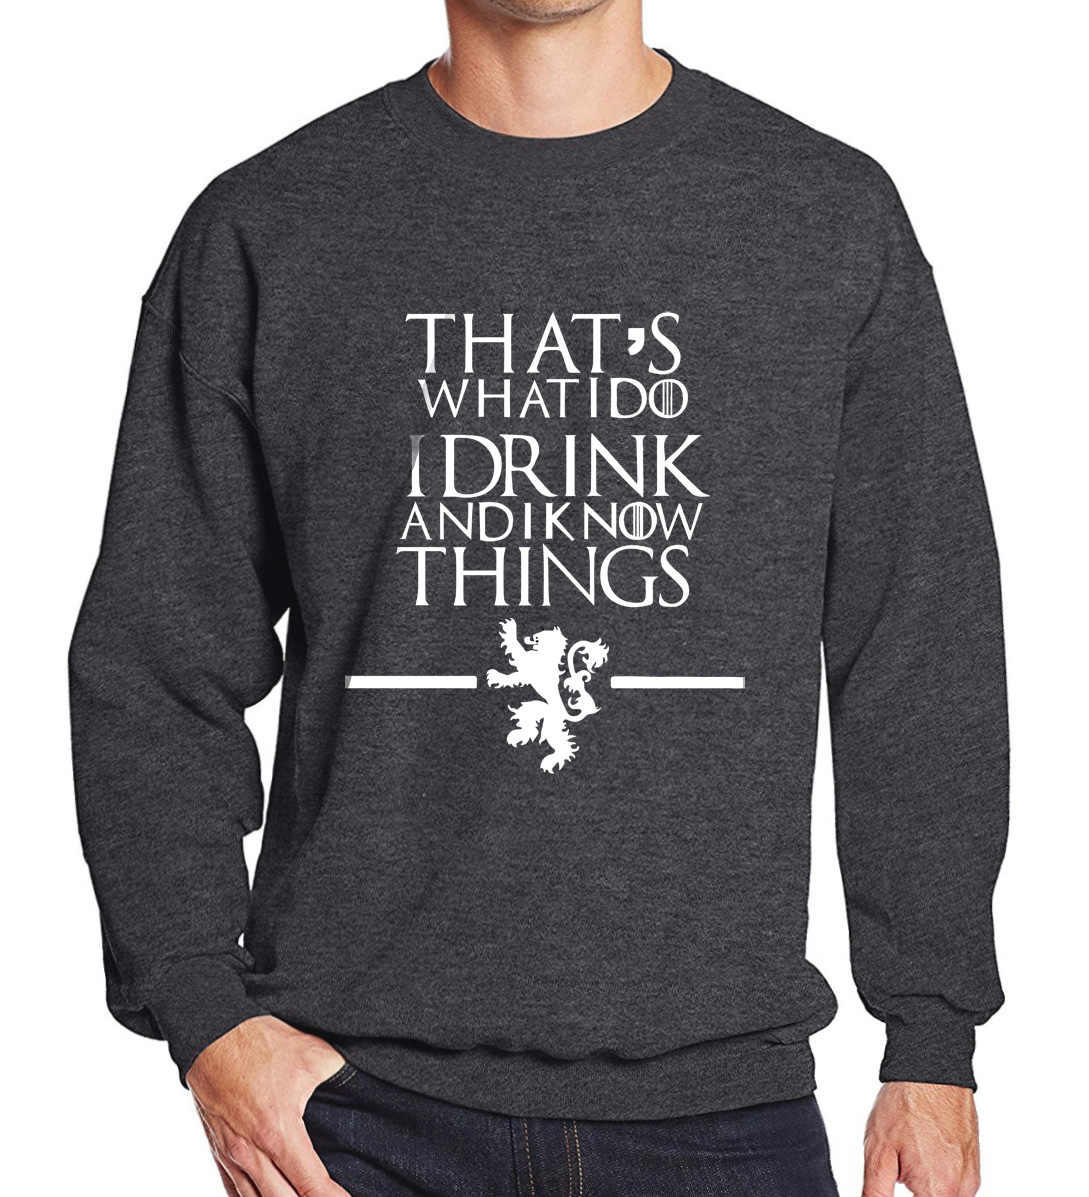 Sweatshirt men 2017 hoodies Game of Thrones men's sportswear That's What I Do I Drink and I know Things printed k-pop top brand